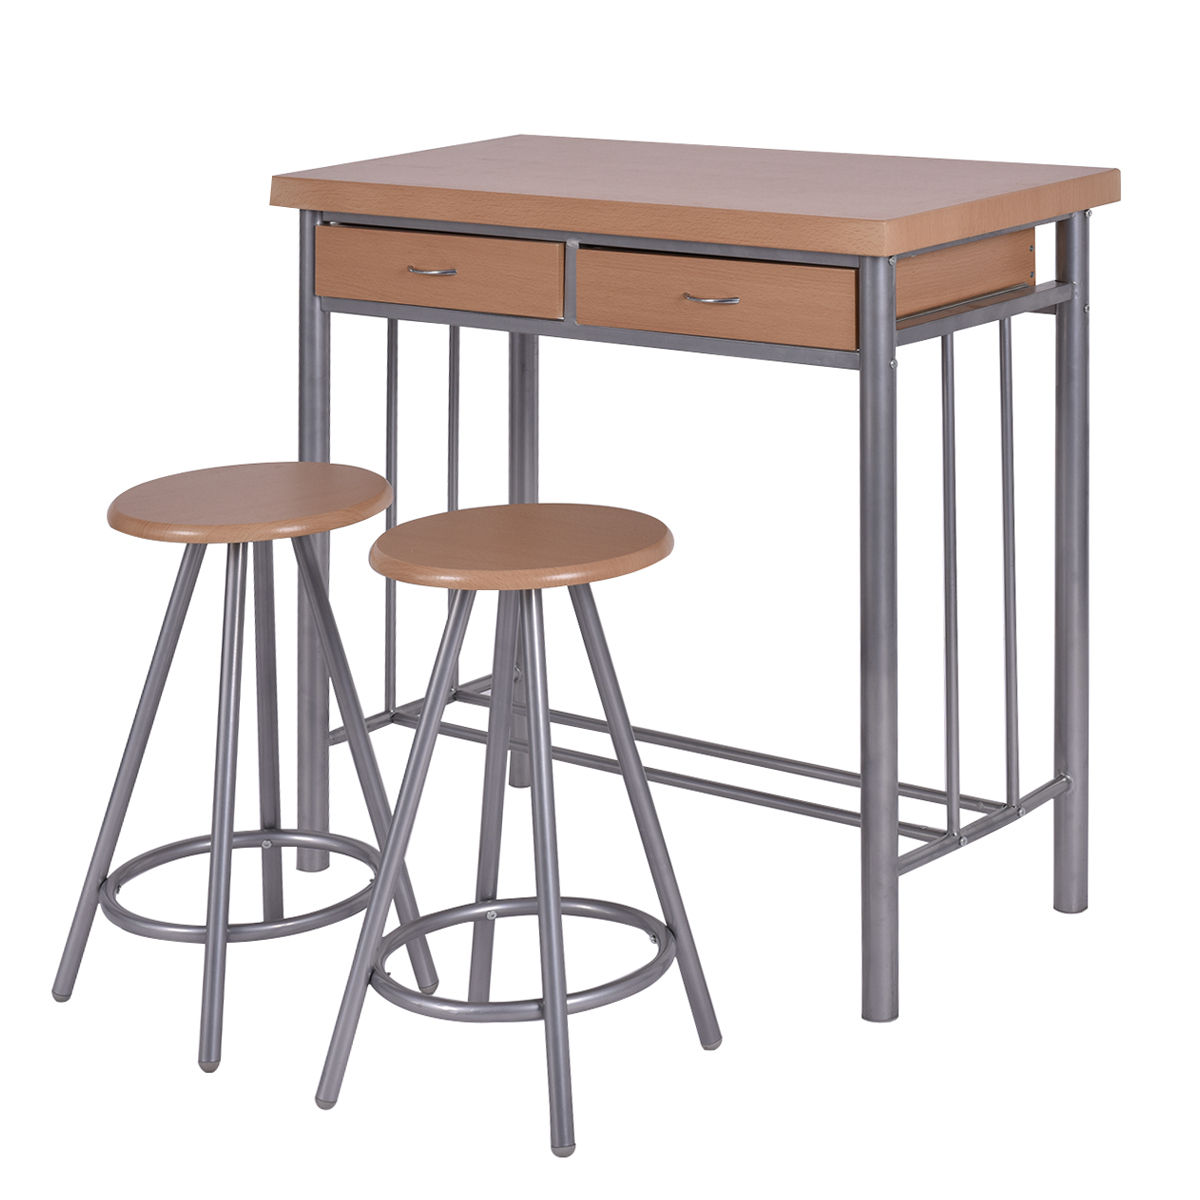 Costway 3 Piece Dining Set Table and 2 Chairs Dinette Kitchen Breakfast  Metal Wood - Small Kitchen Table With Two Chairs